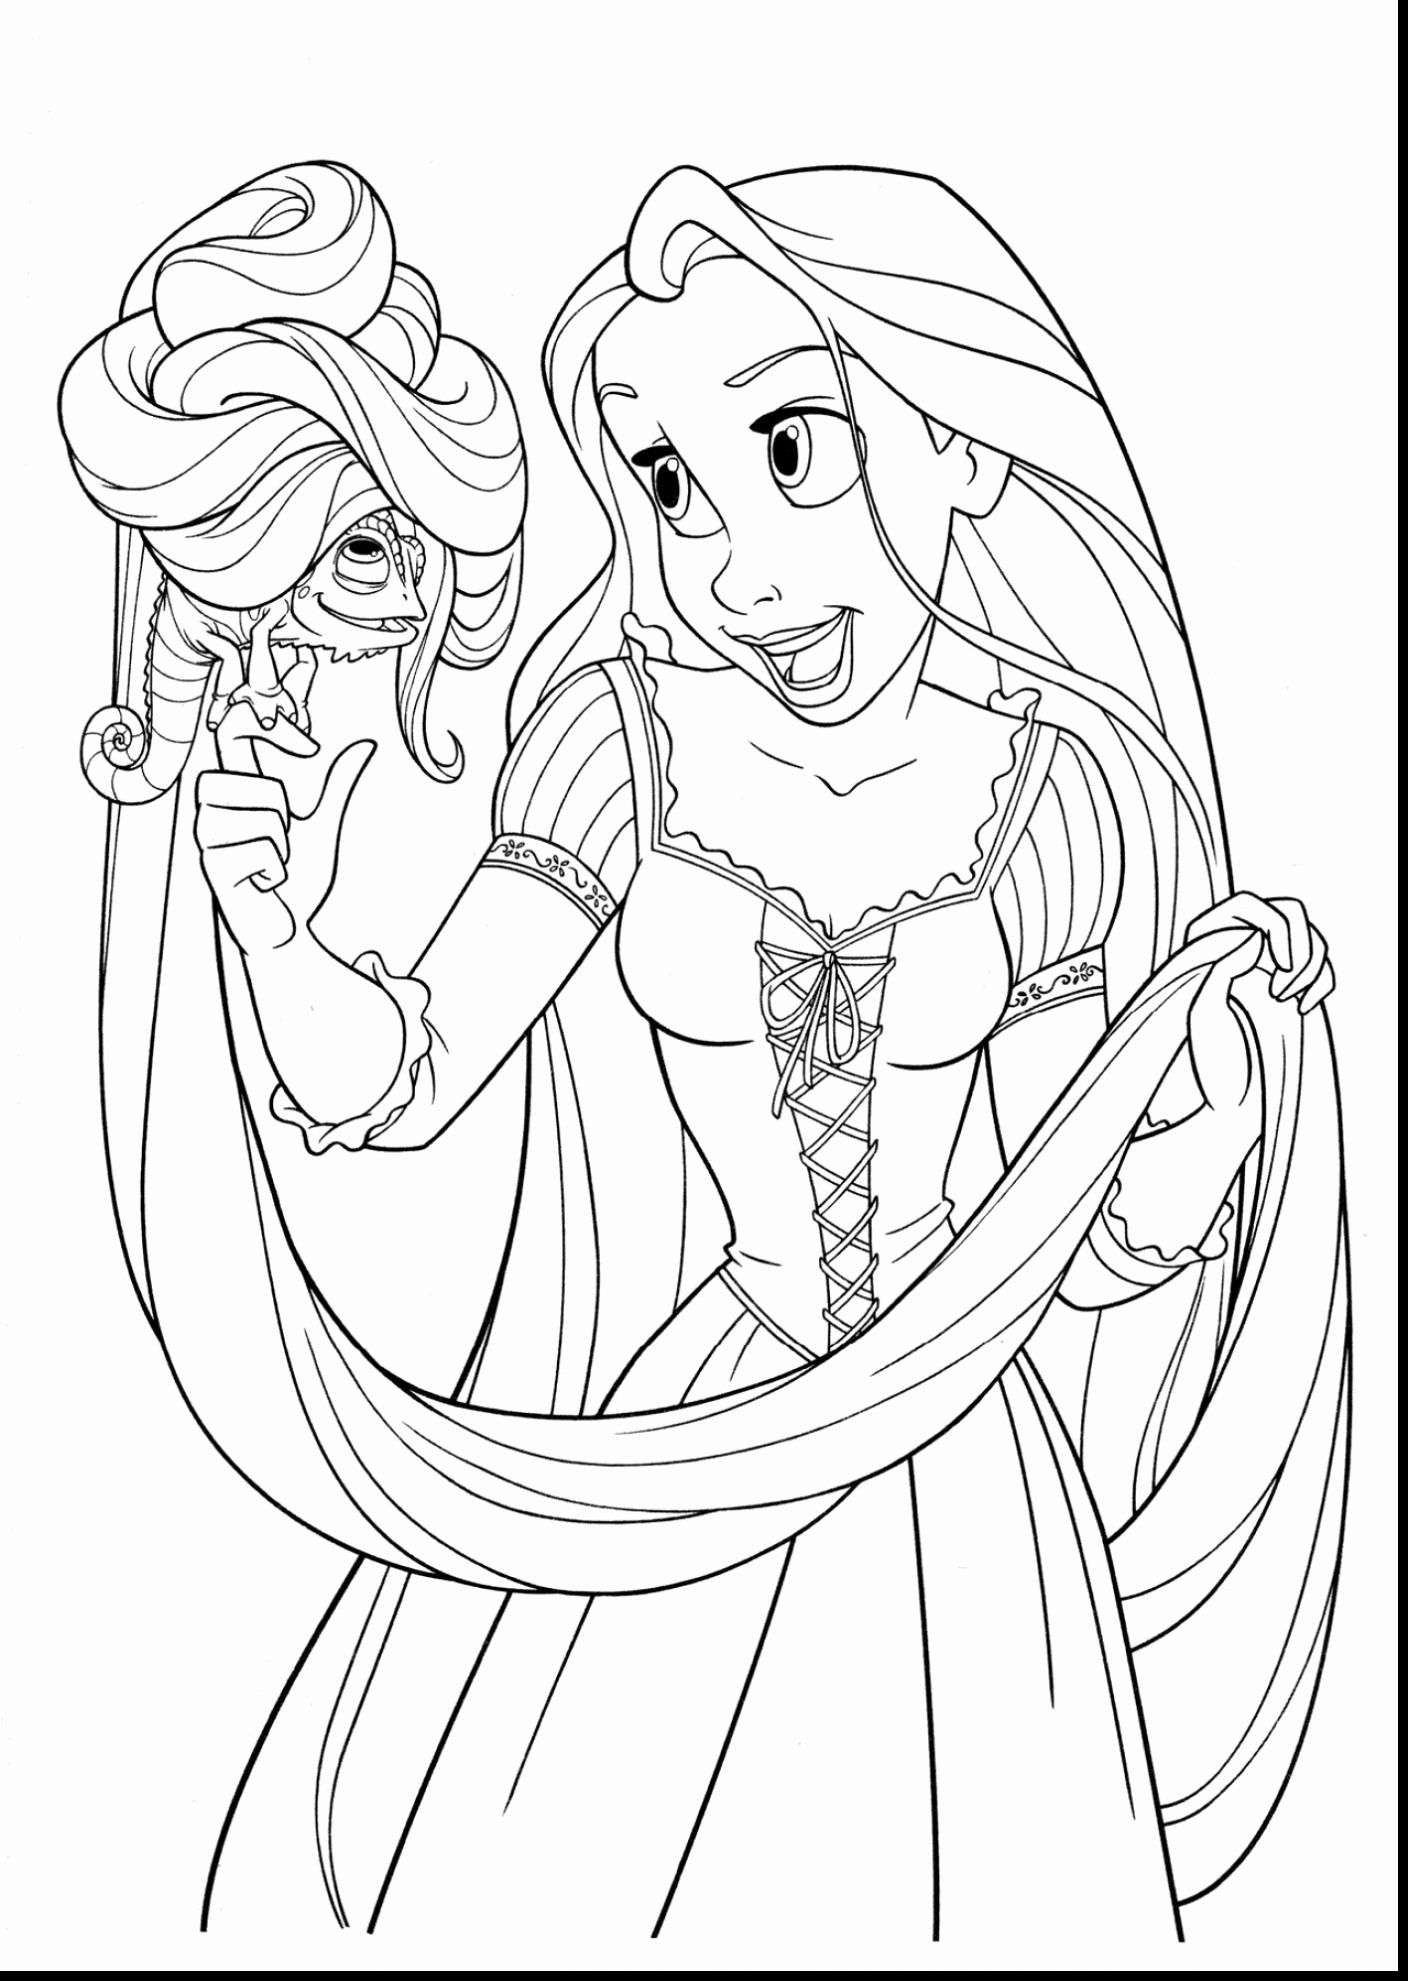 Disney Coloring Sheets Pdf Fresh Disney Coloring Pages Pdf Printable In 2020 Tangled Coloring Pages Princess Coloring Pages Rapunzel Coloring Pages